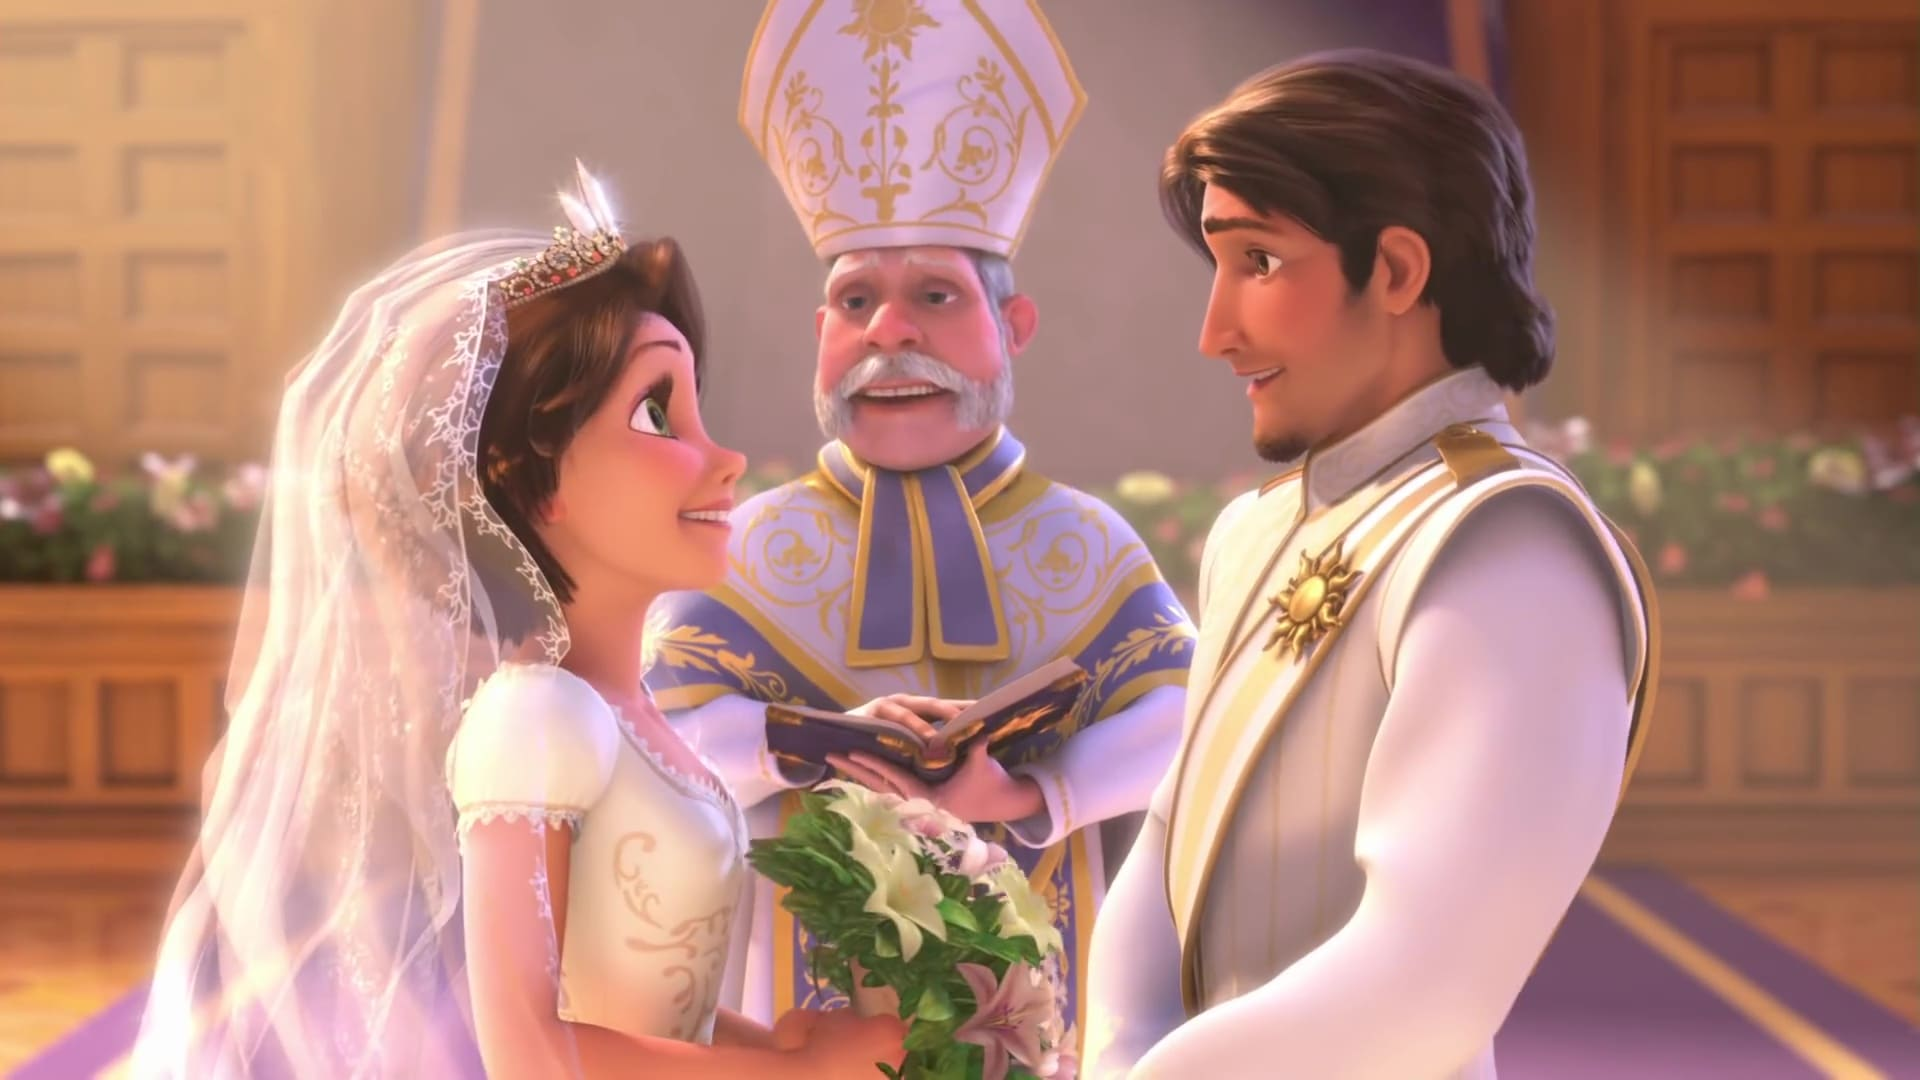 image mariage raiponce tangled ever after disney